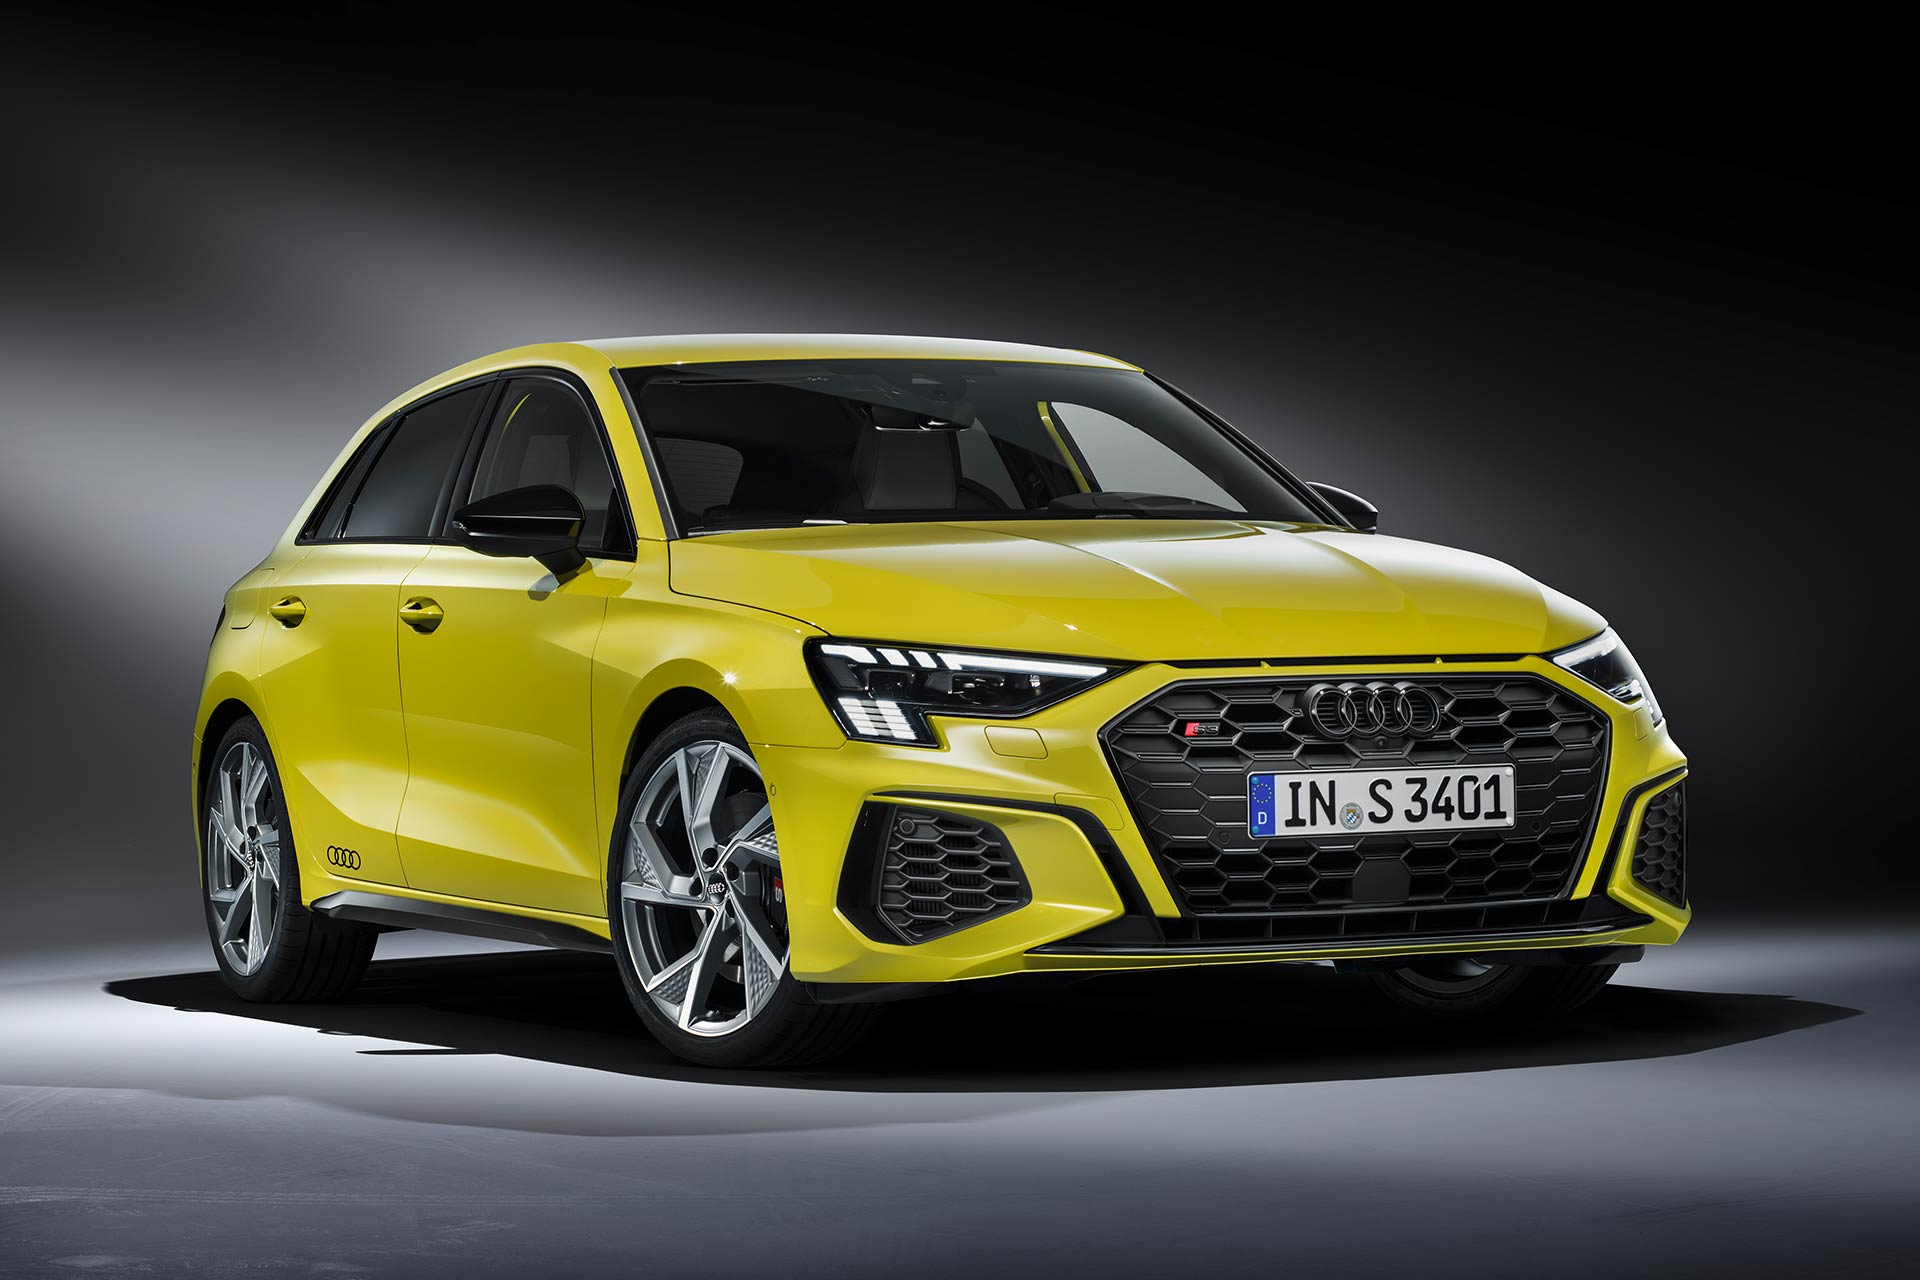 2020 Audi S3 sportback front side view